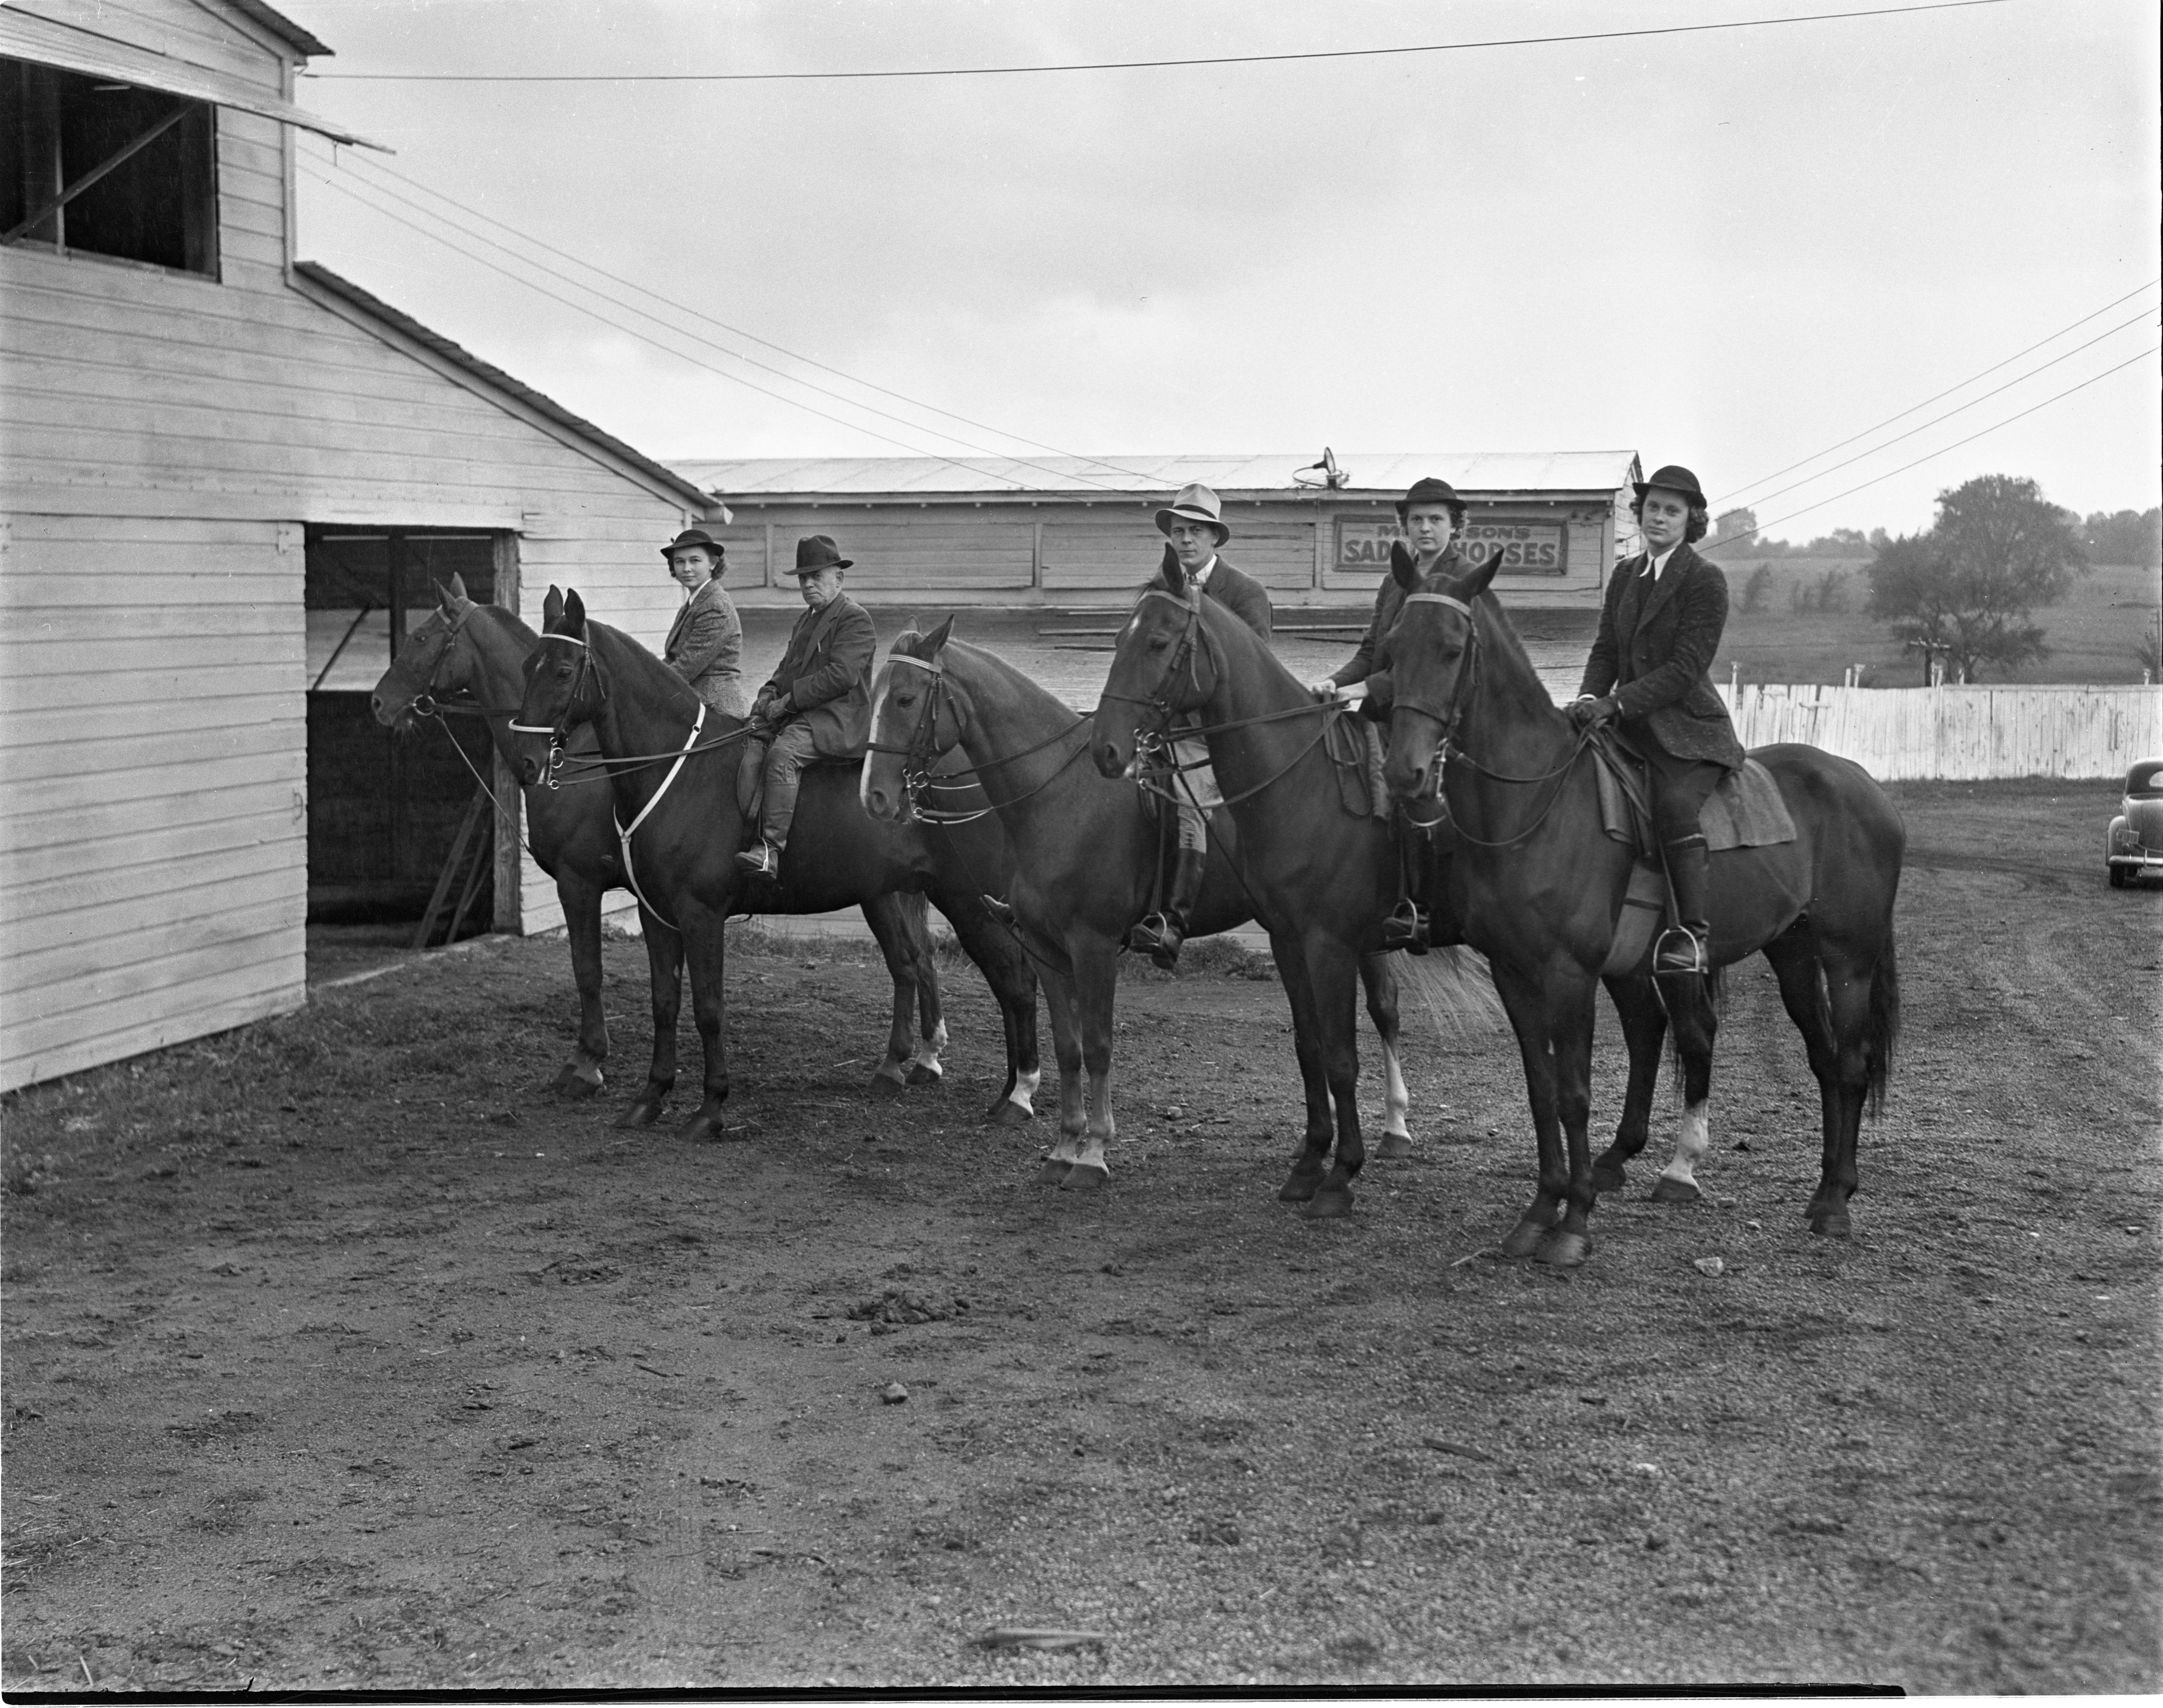 Horses & Riders Outside The Mullison Riding Stables, October 1938 image